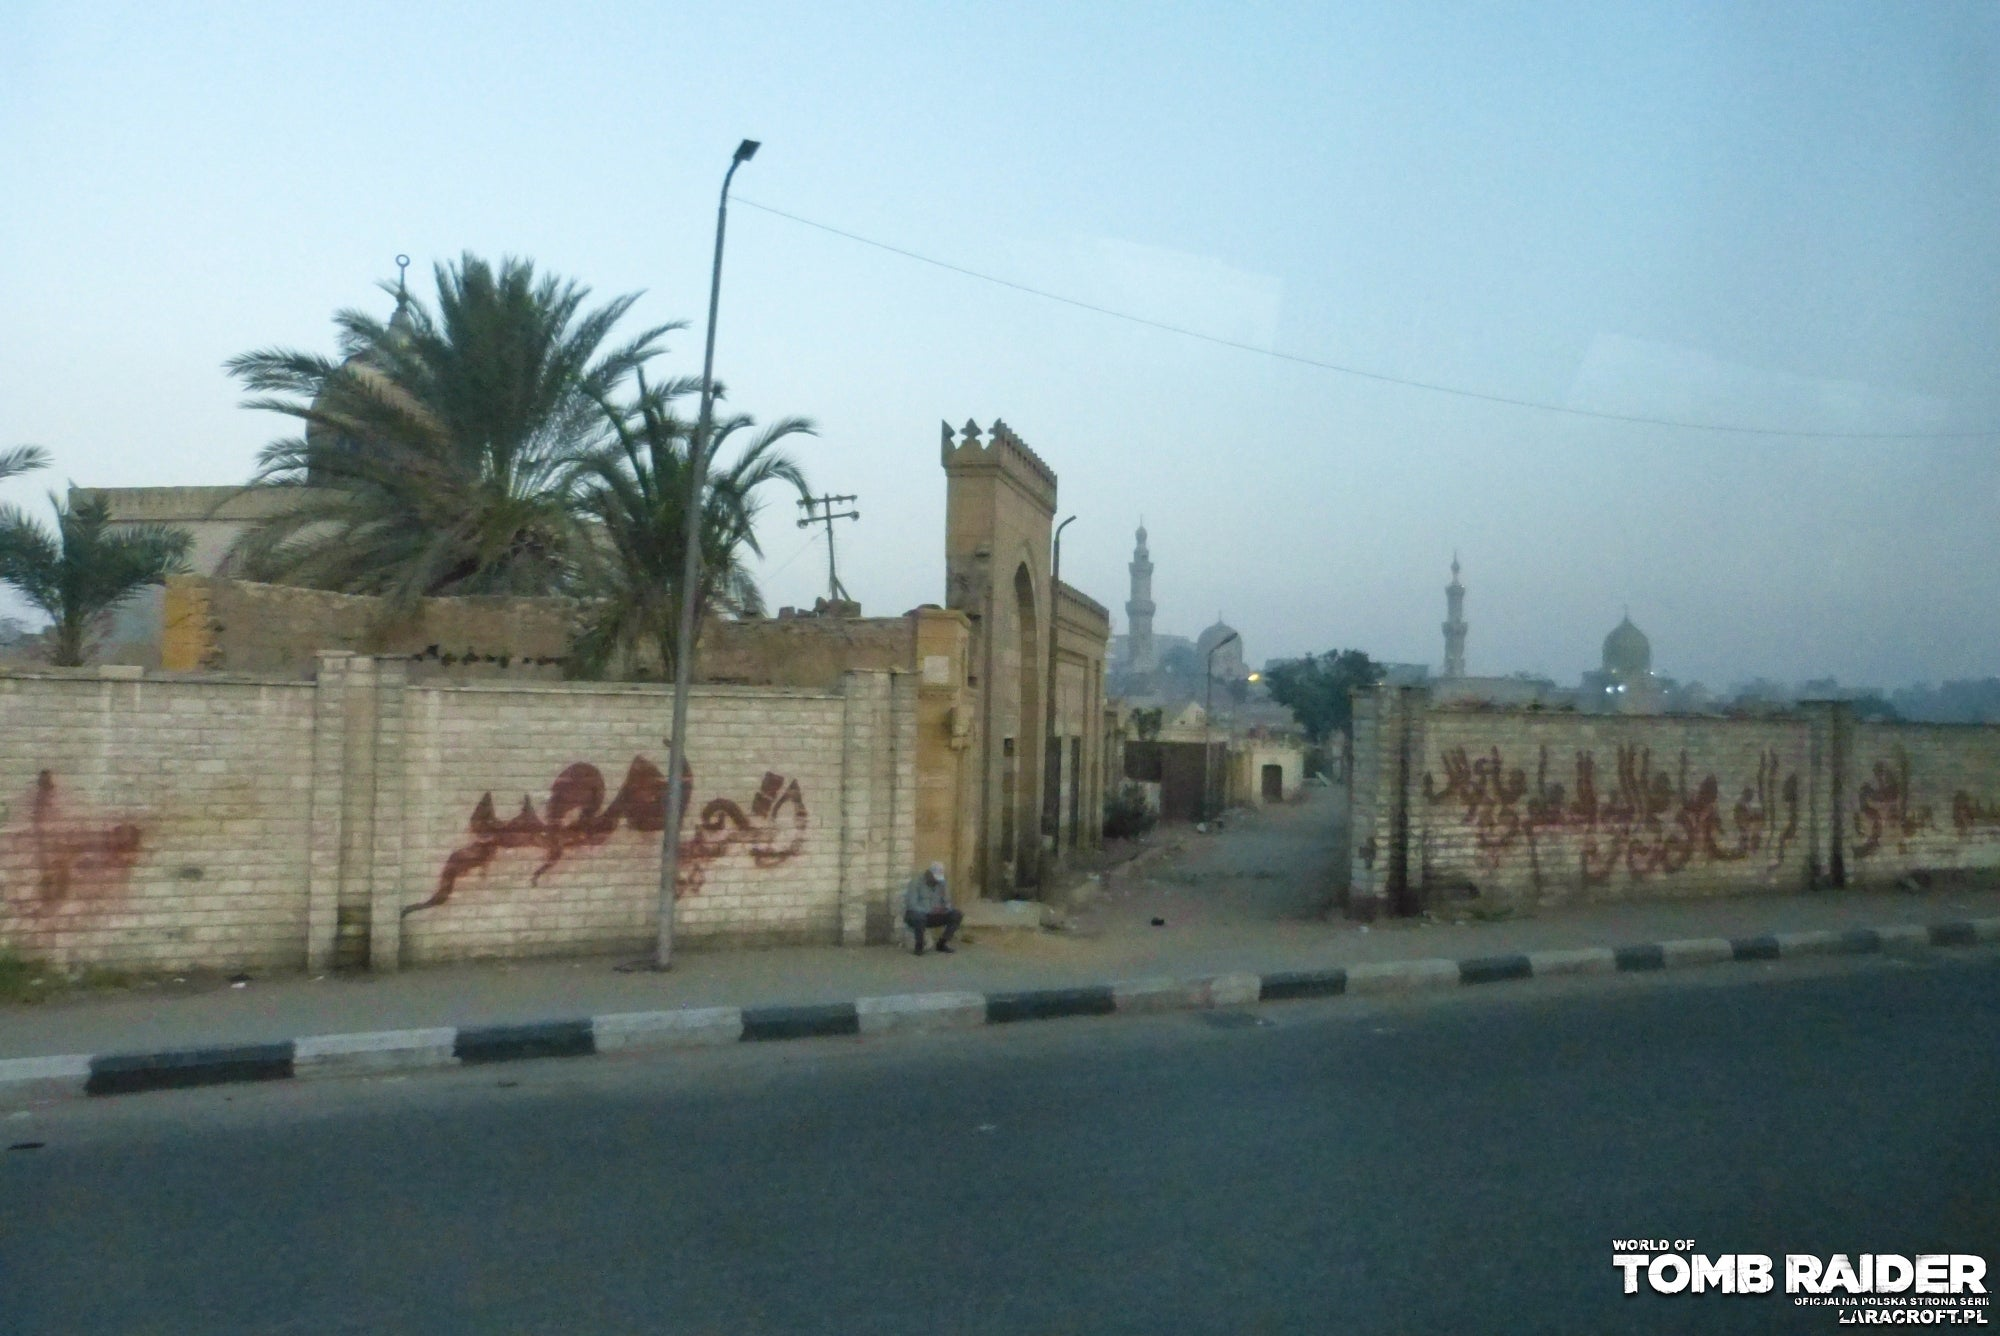 A photograph of a Lara Croft figure in front of Cairo in Egypt